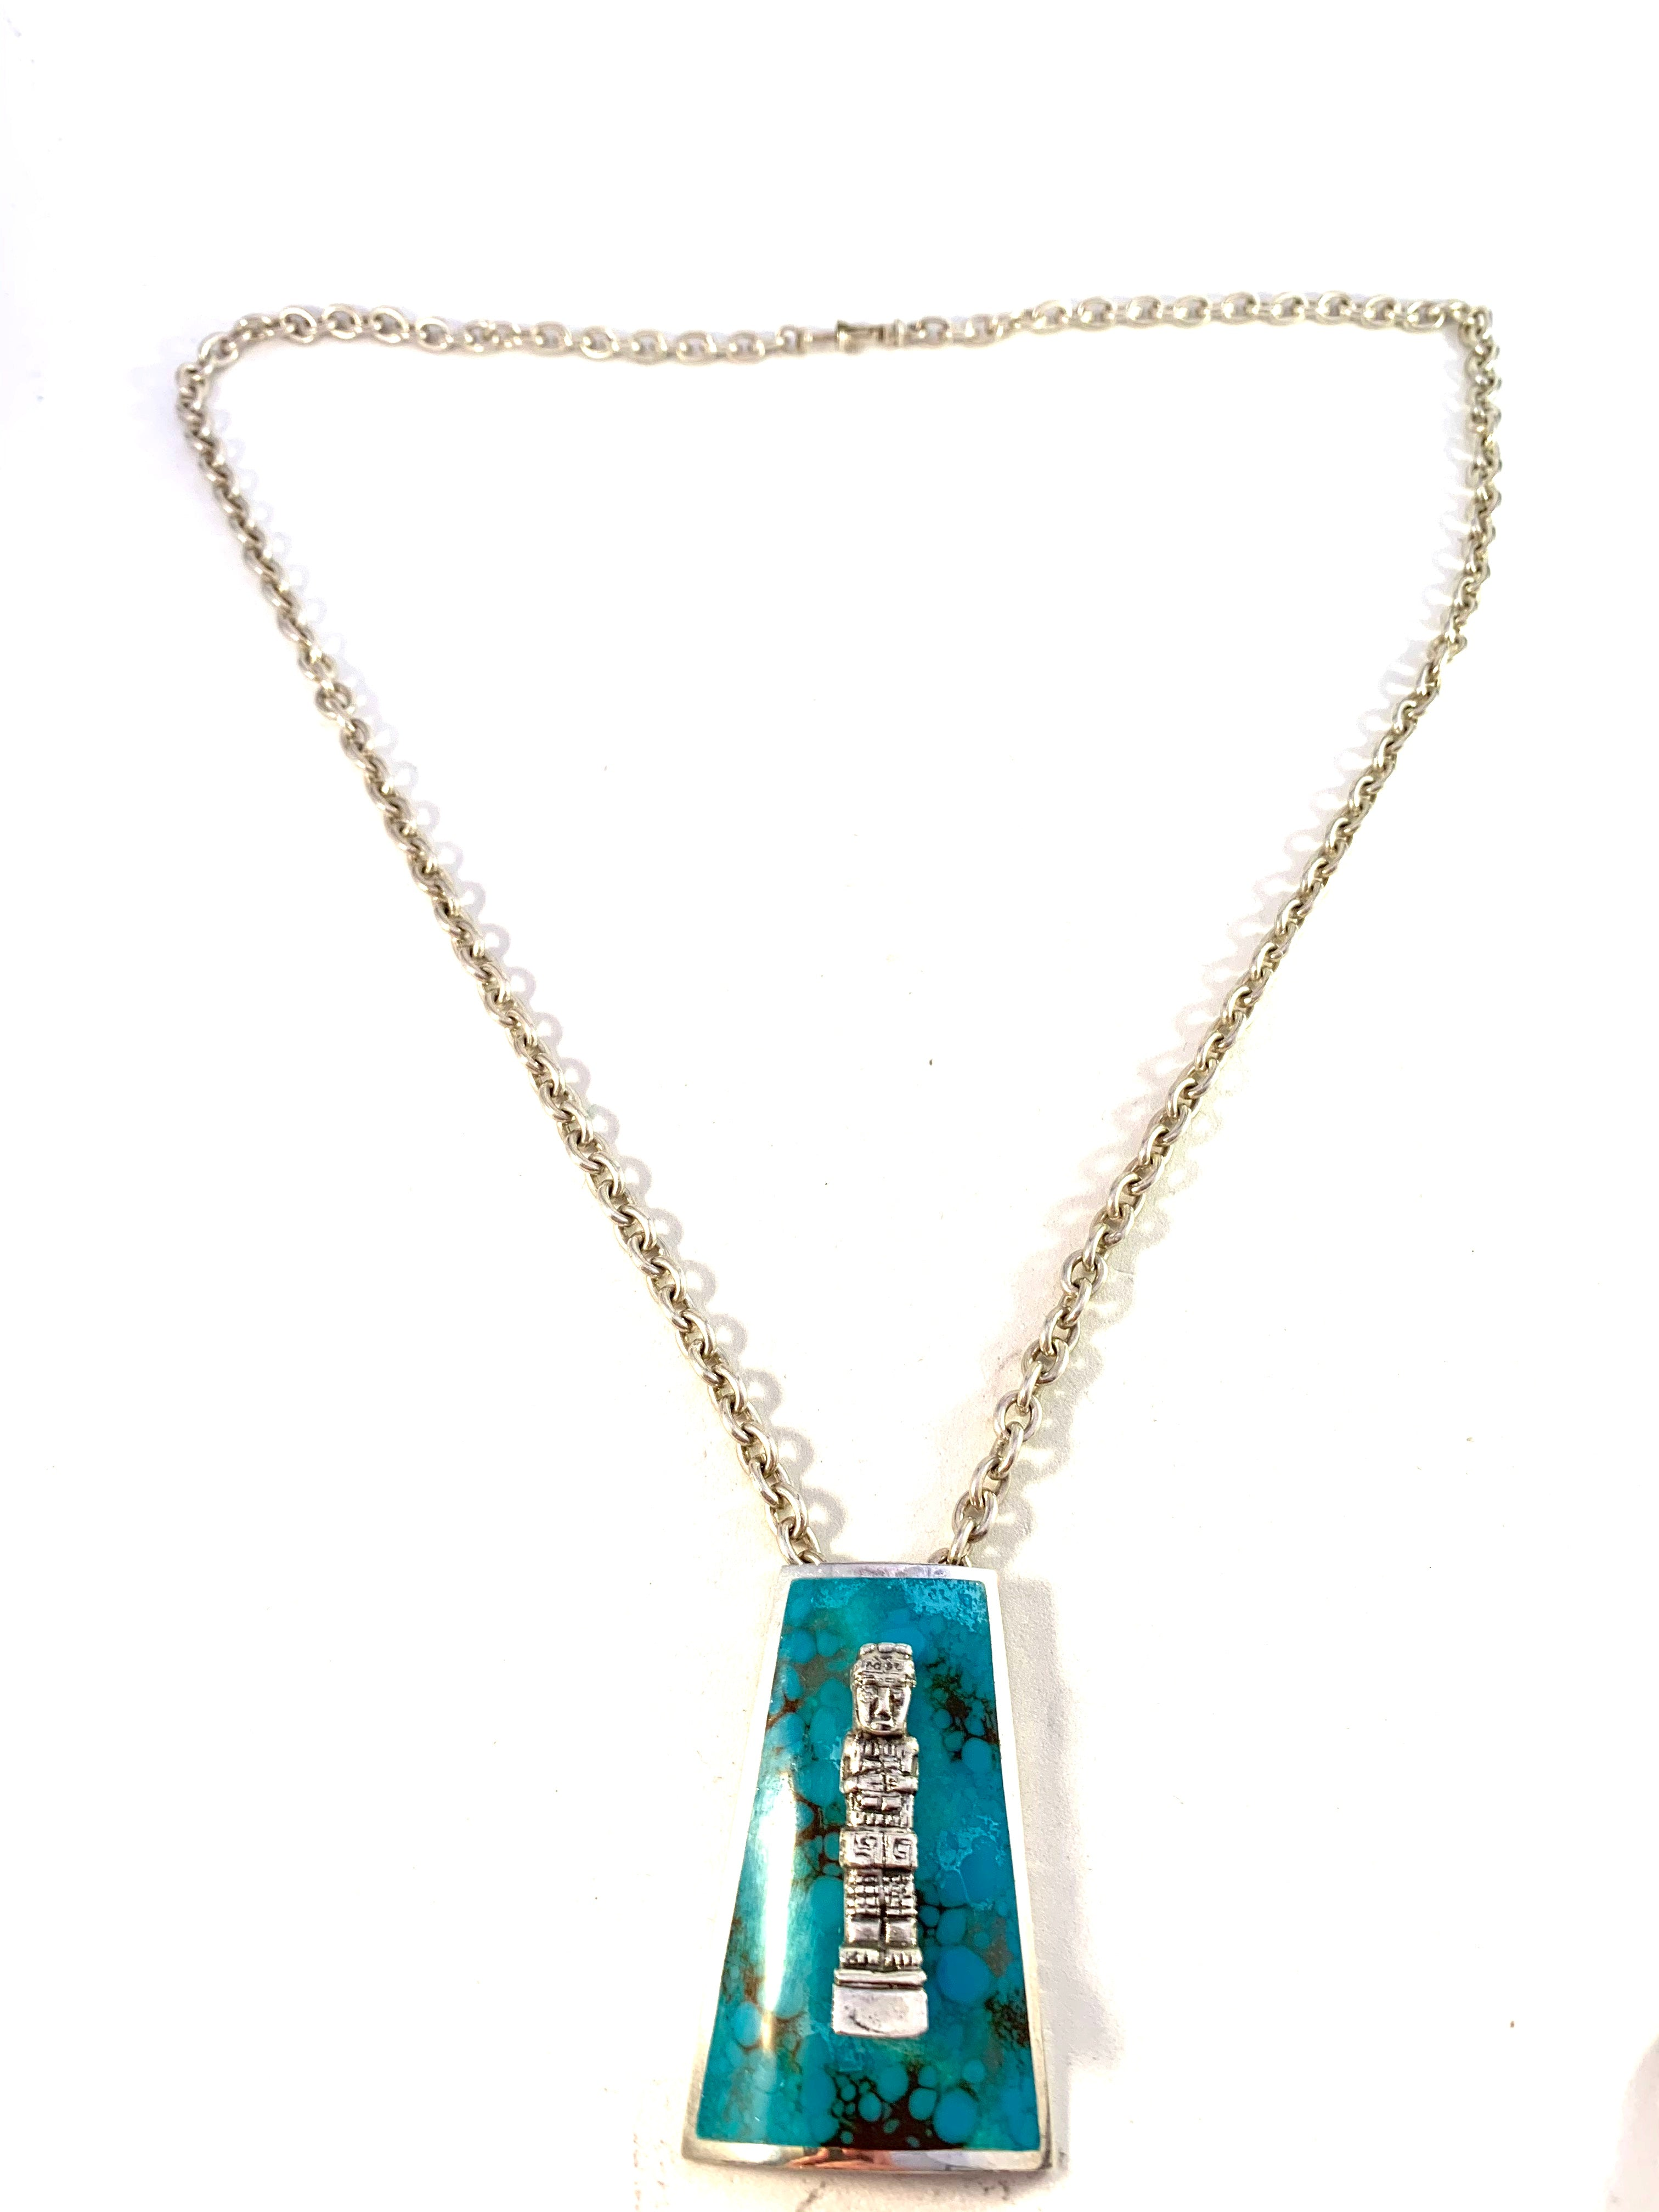 Graziella Laffi, Peru 1960s Chunky 3oz Modernist Sterling Silver Turquoise Enamel Pendant Necklace.